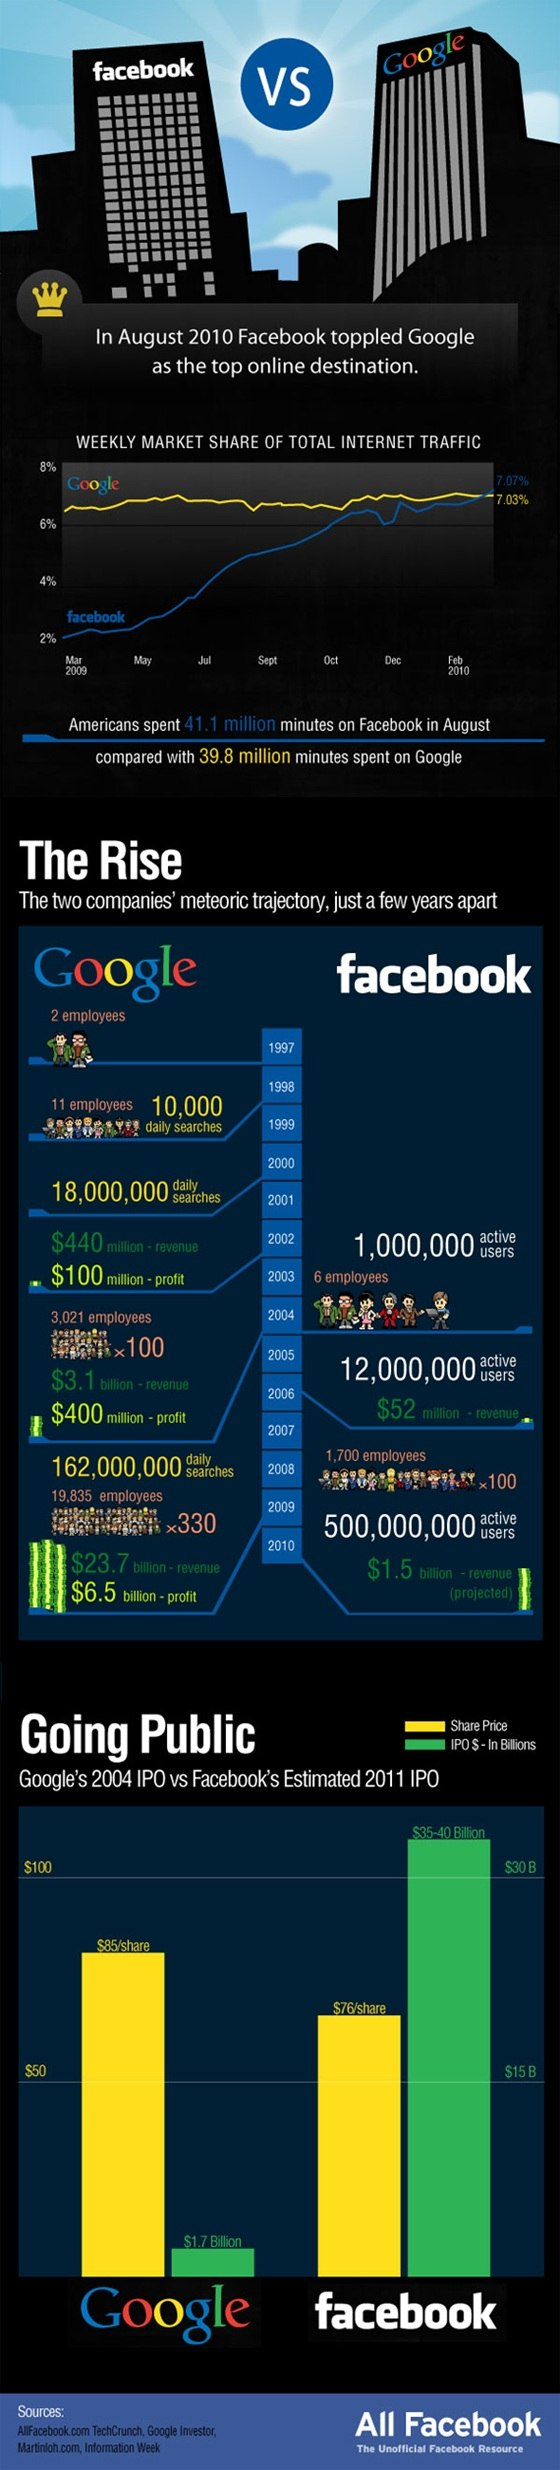 google vs facebook